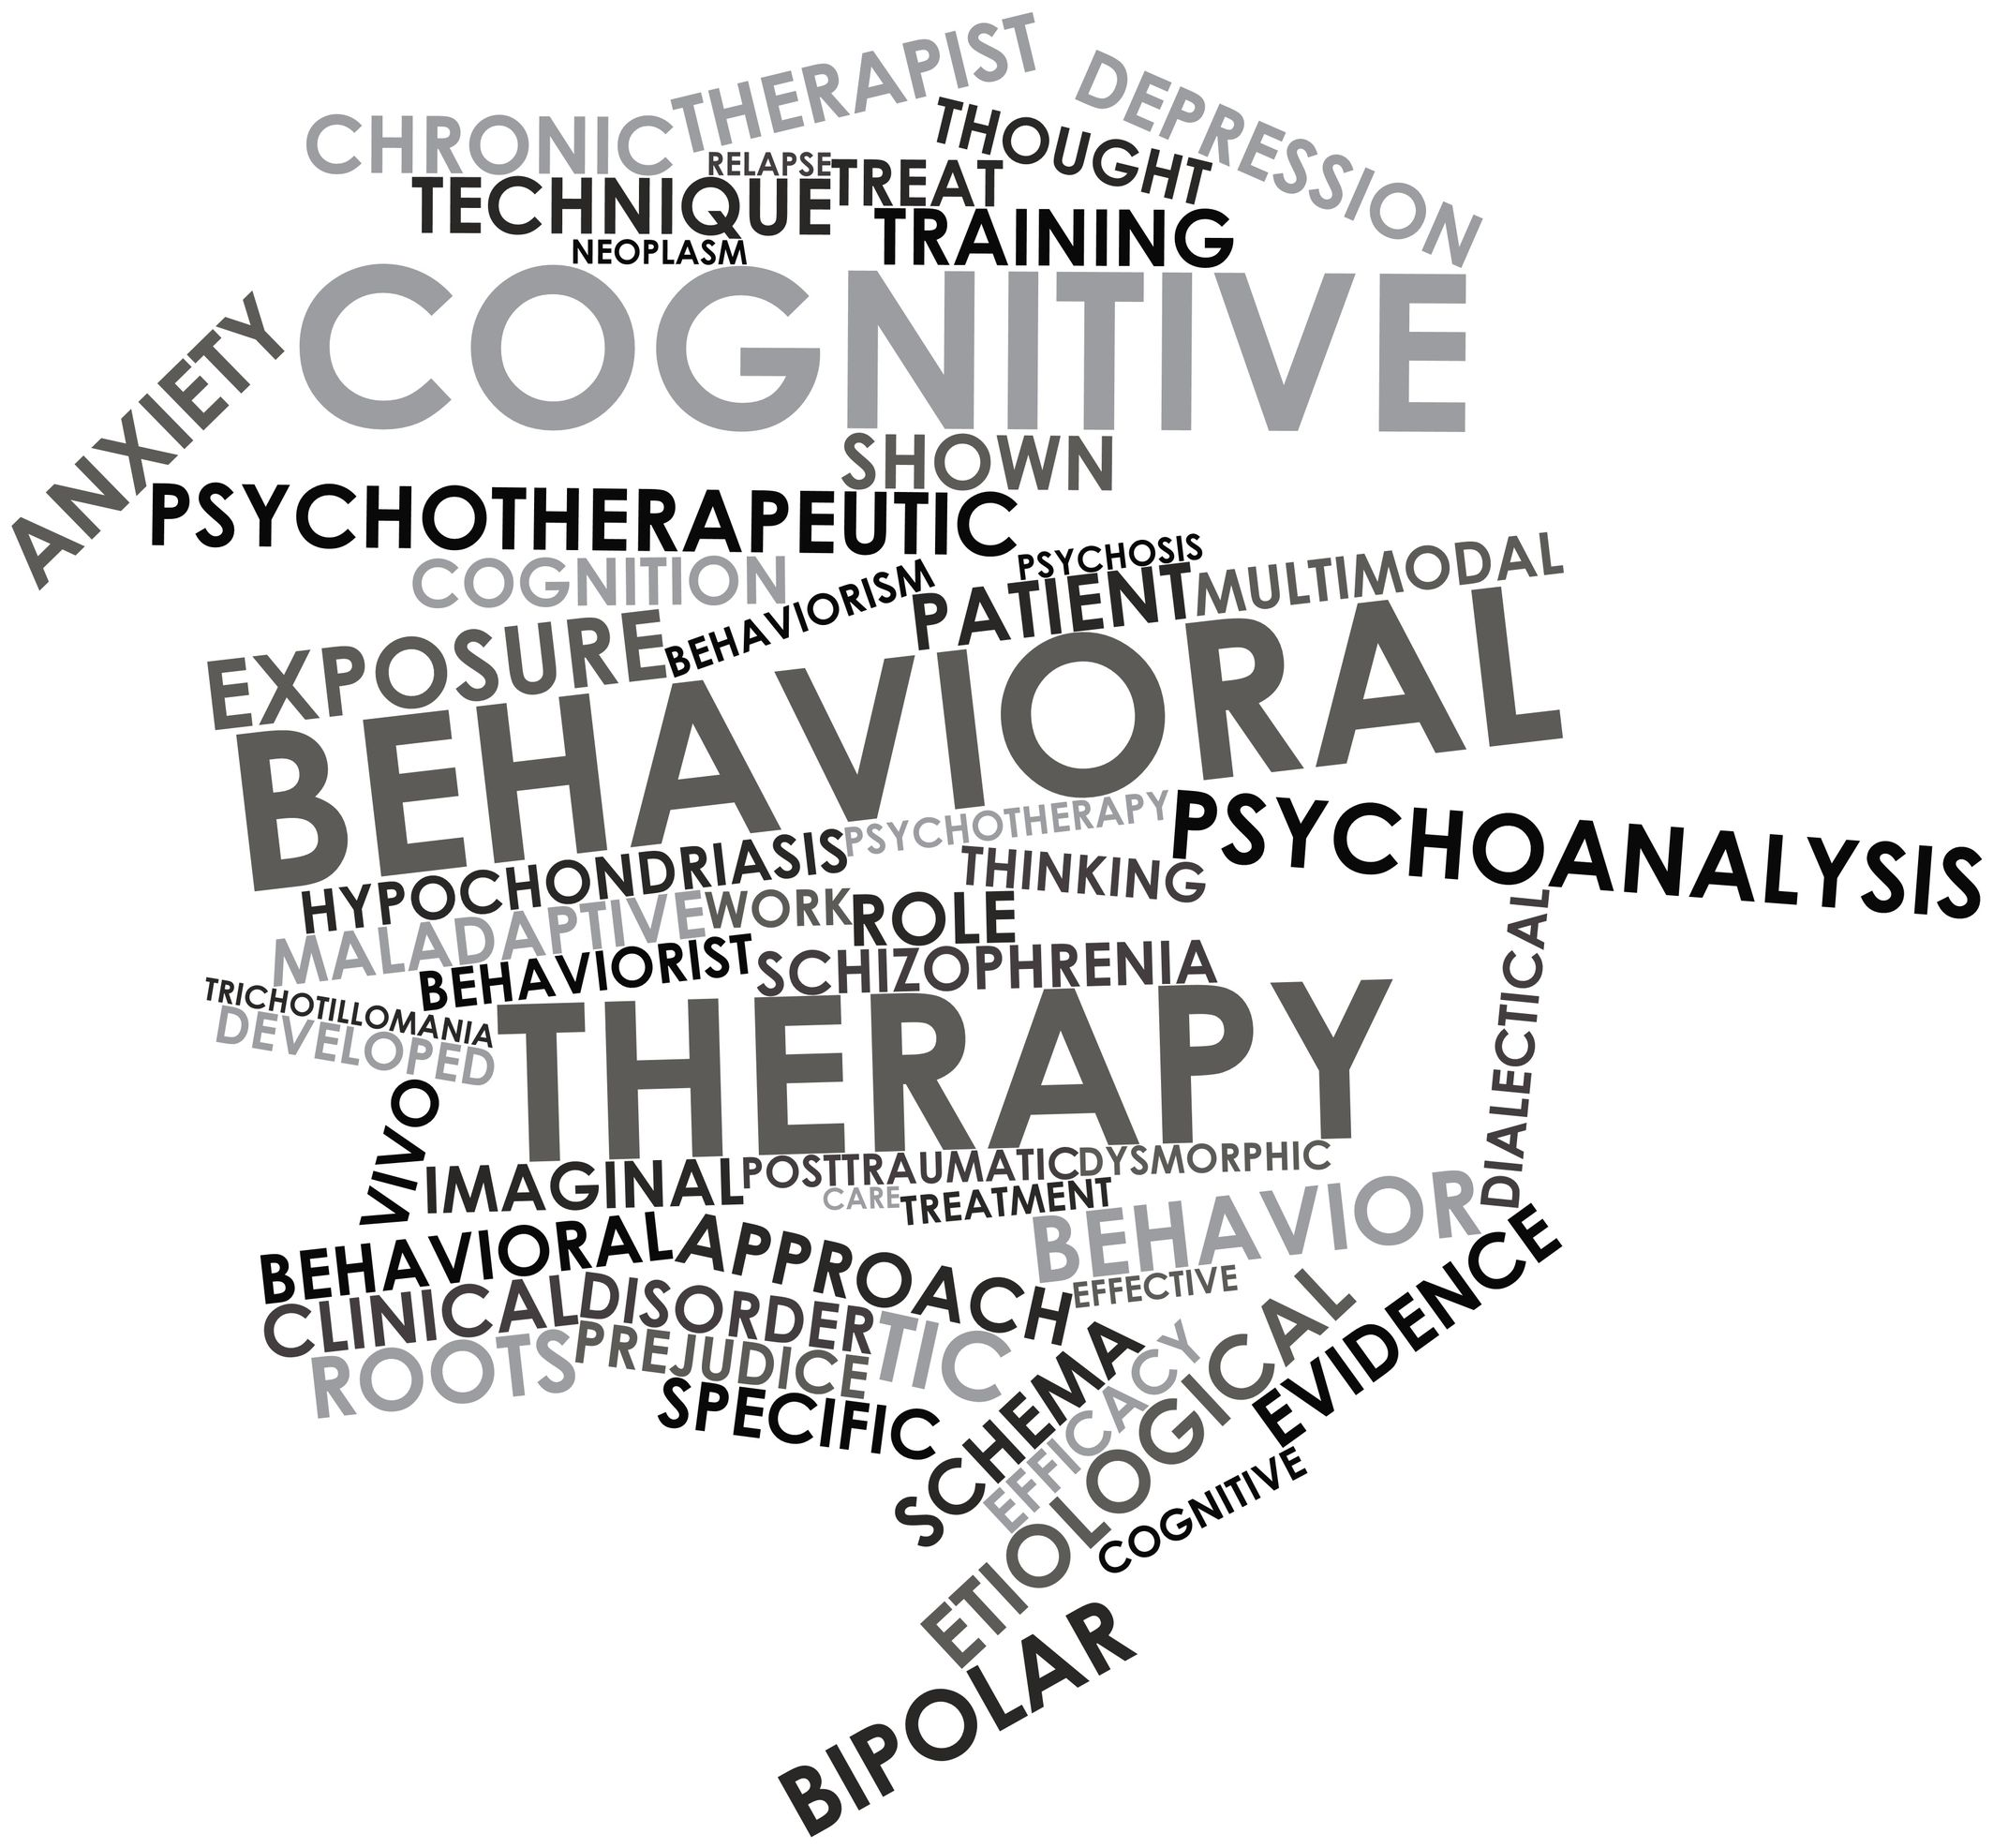 Differences between DBT & CBT therapies